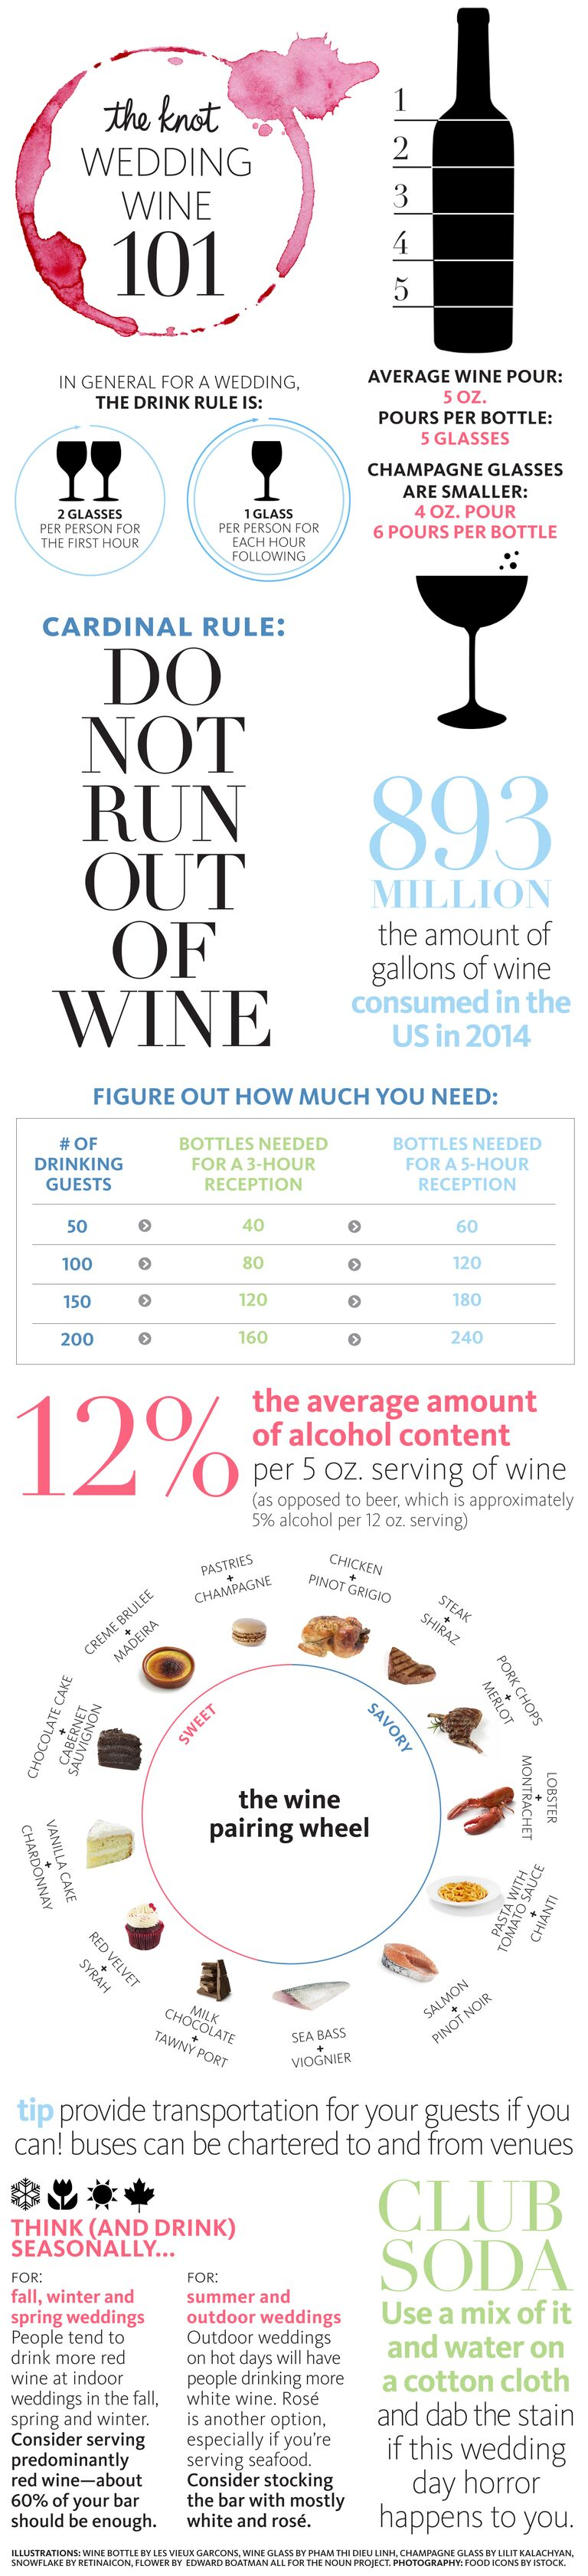 Infographic Of Facts About Serving Wine At Your Wedding